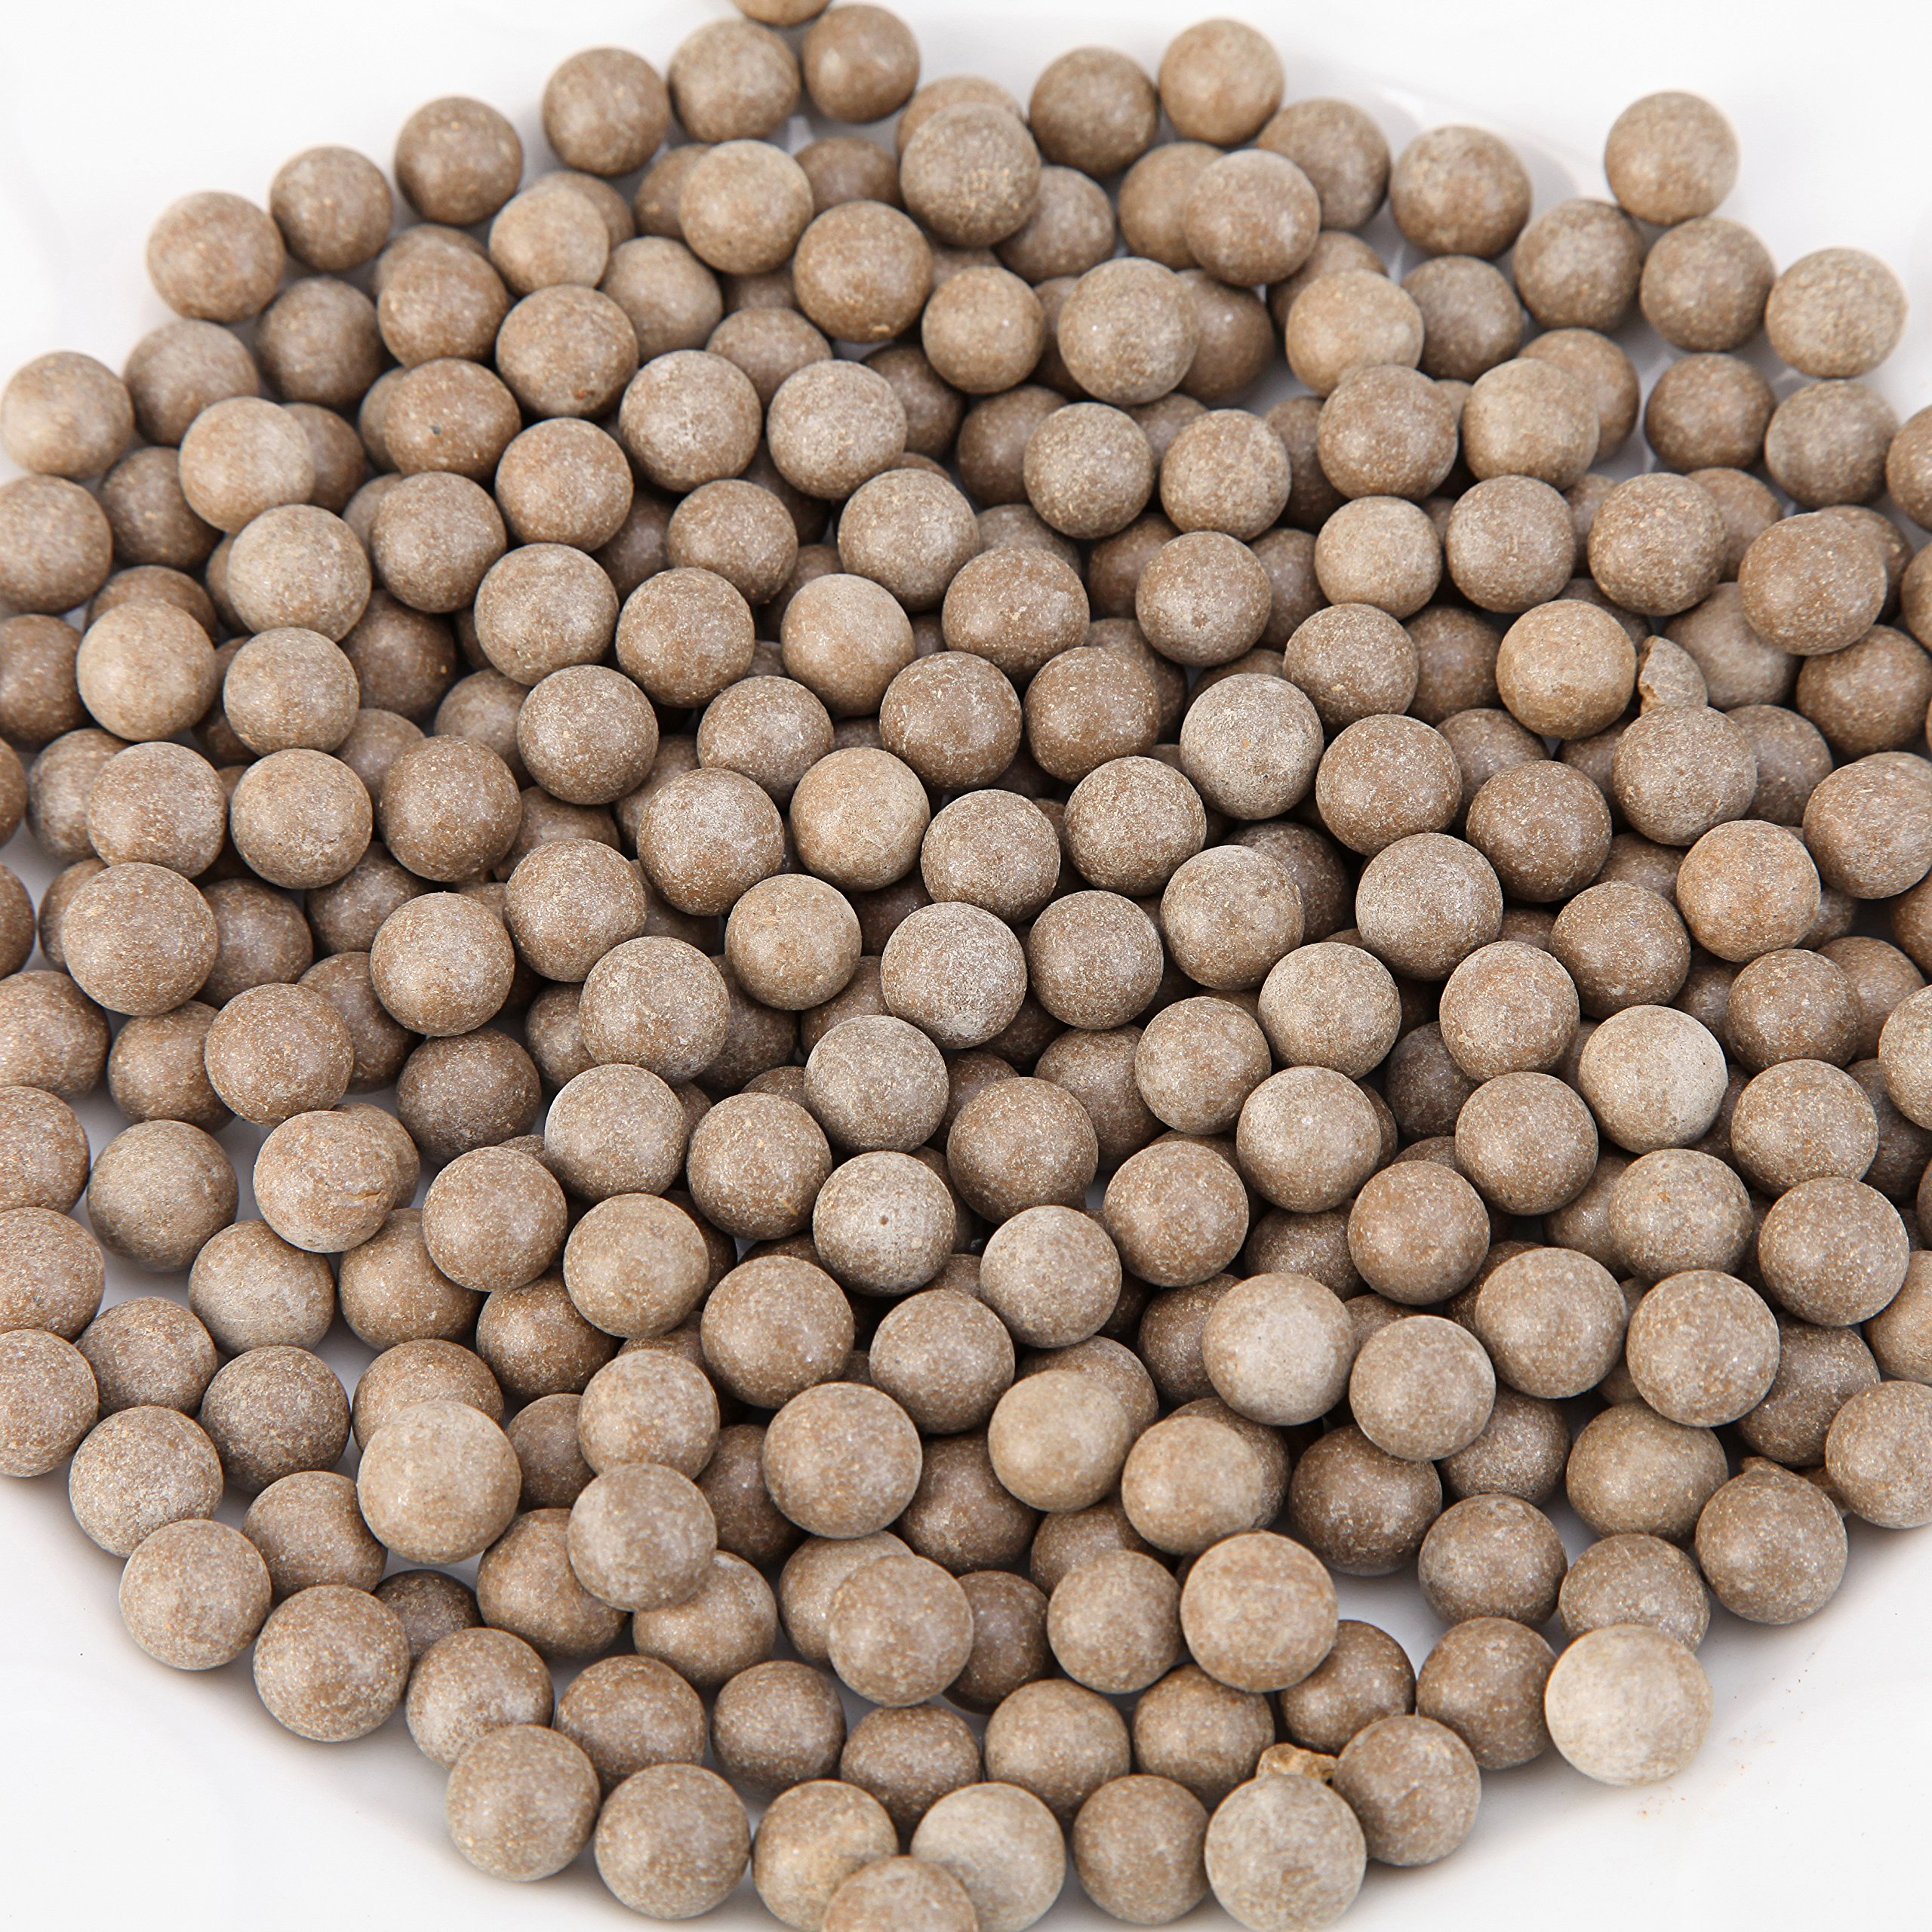 L Continue Pack 1500 Slingshot Ammo 3/8'' Biodegradable Hard Clay Ball - Soil Color.